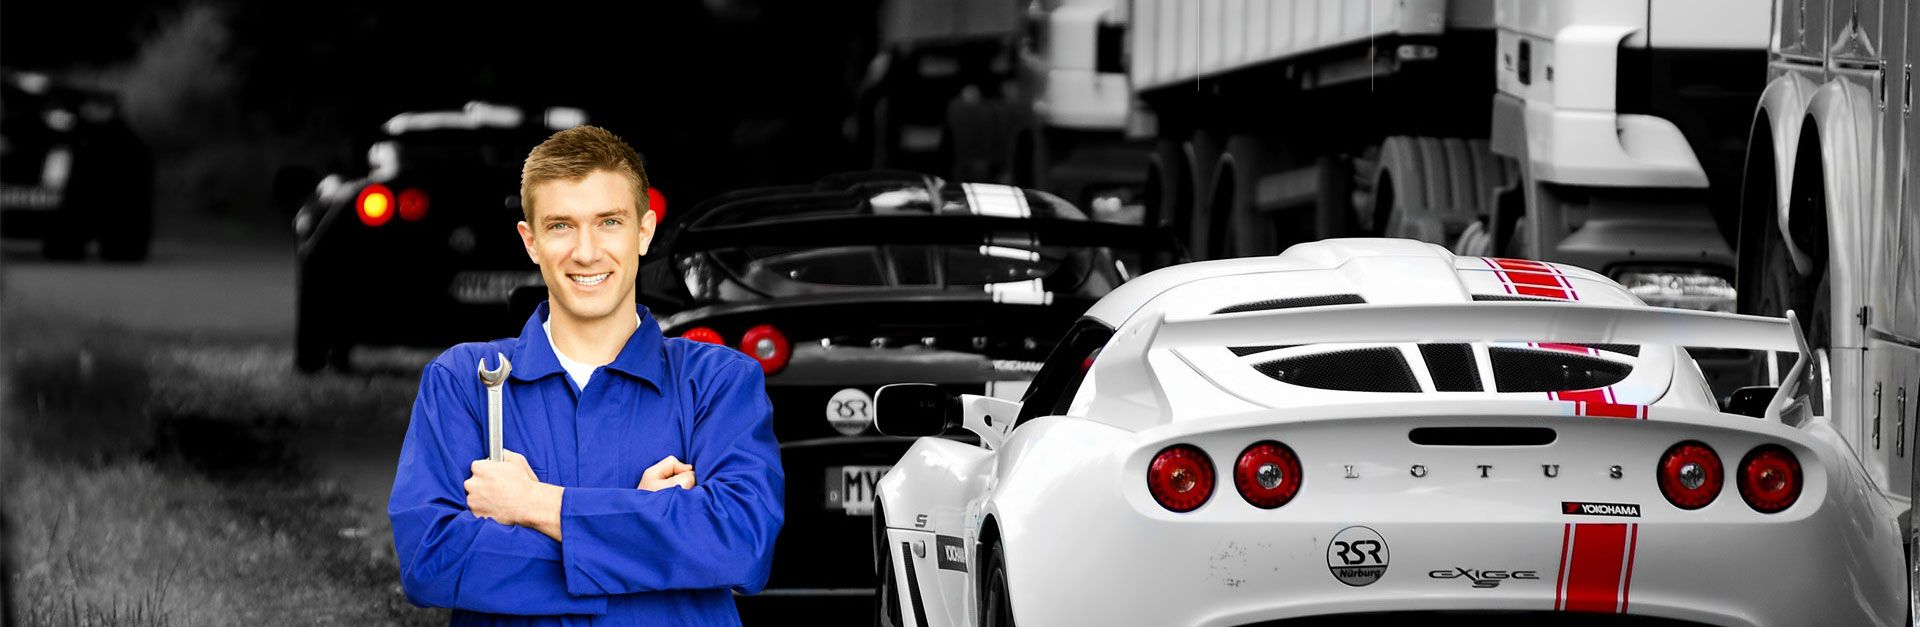 Boby garage is one of the leading car service center in